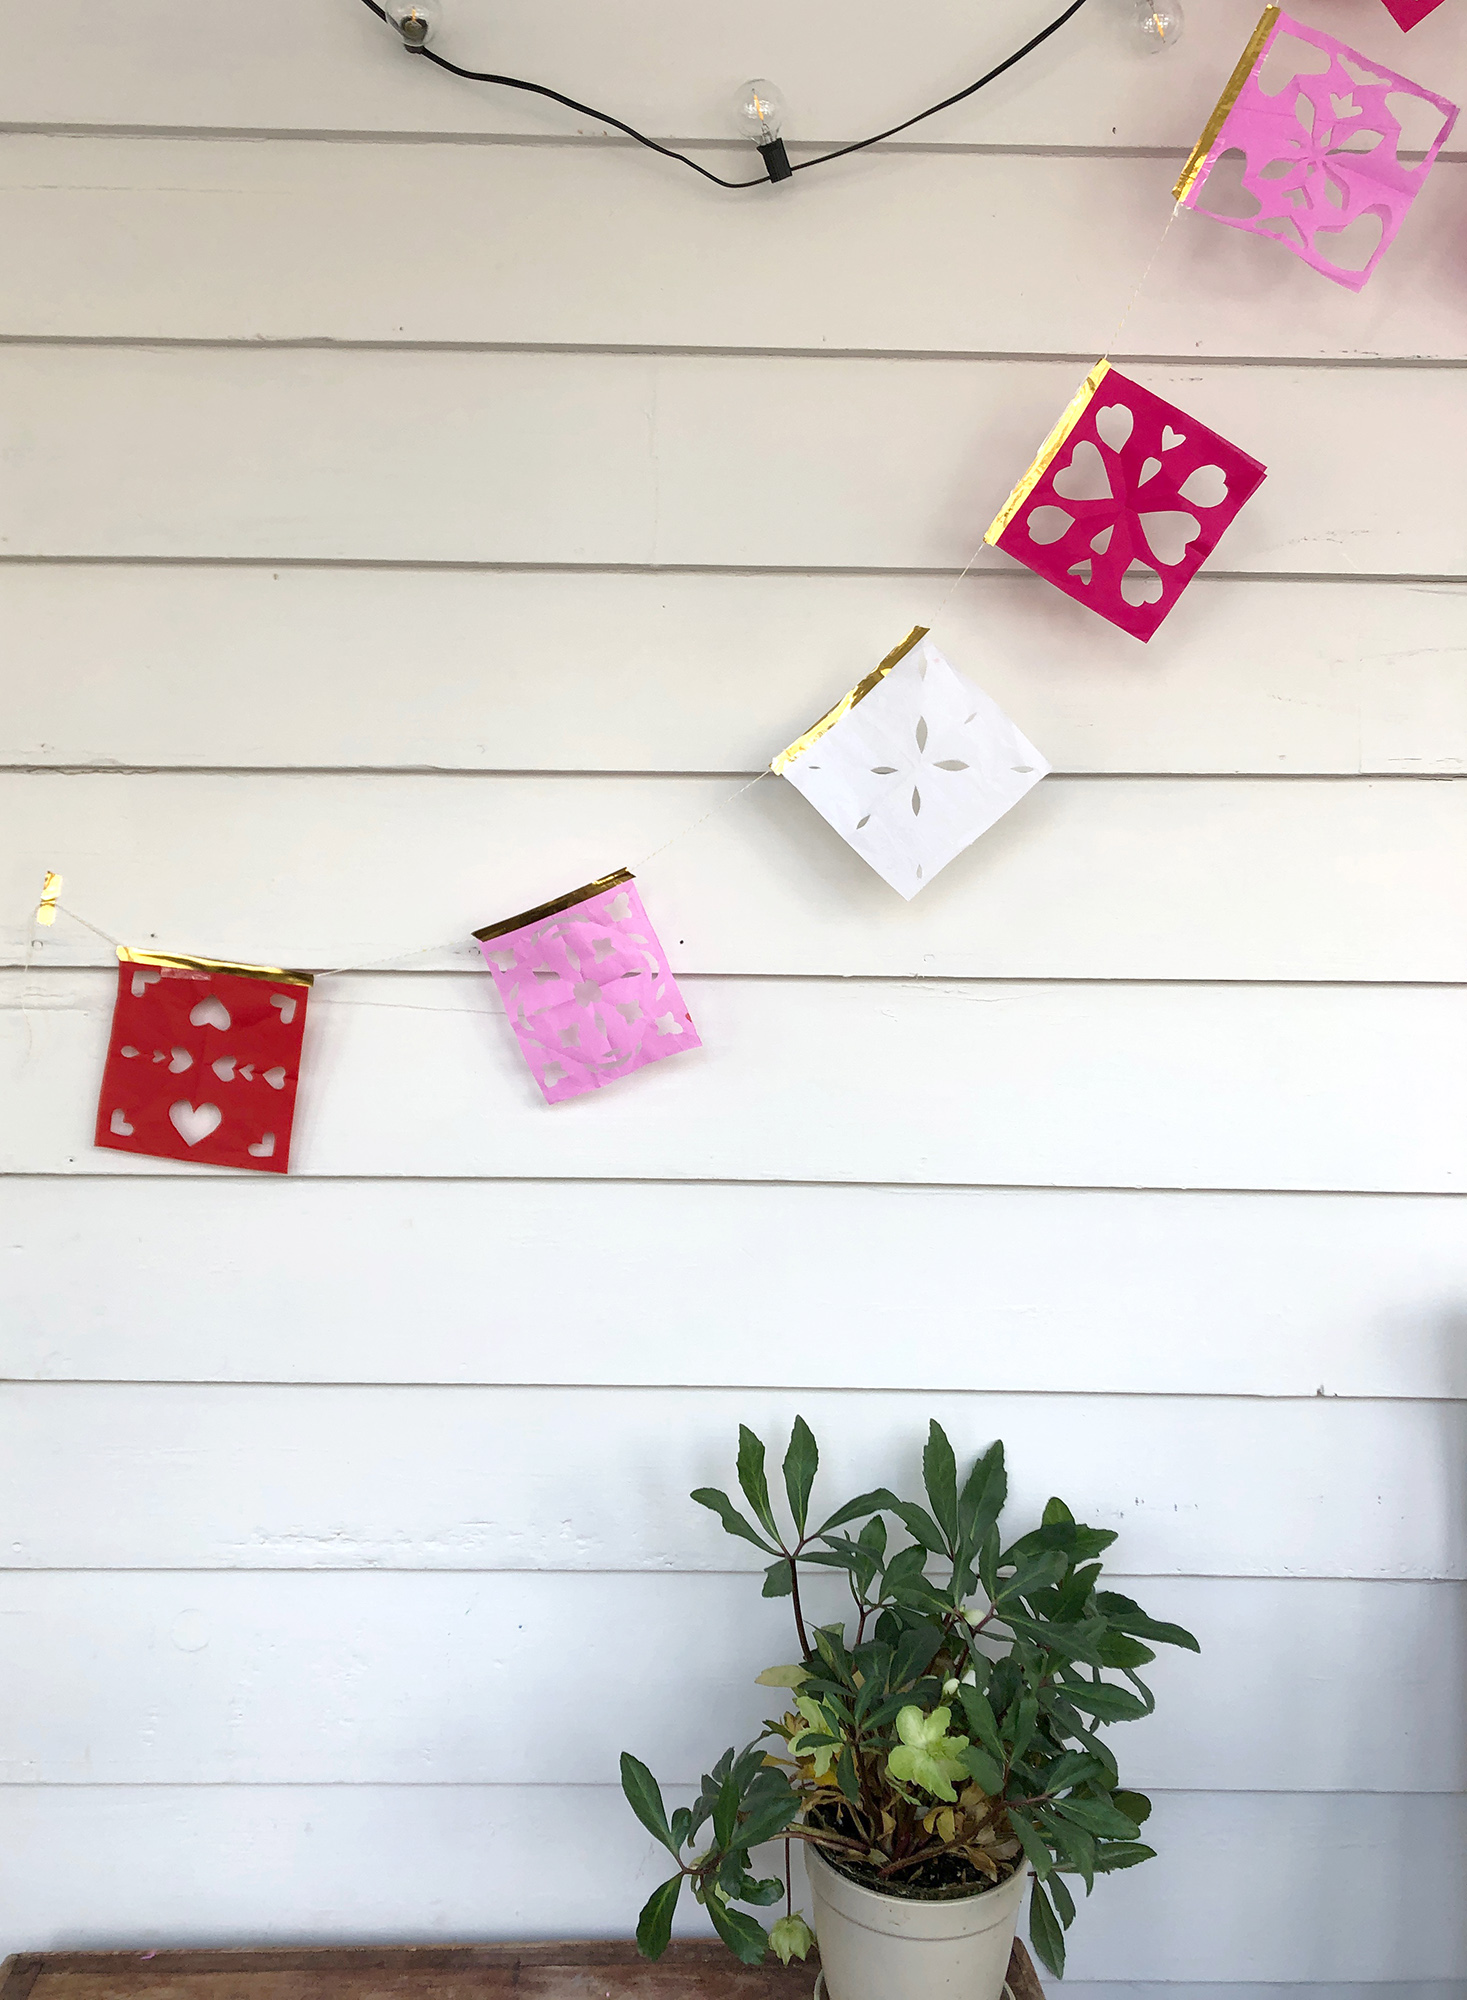 Papel picado for kids –hanging paper garland